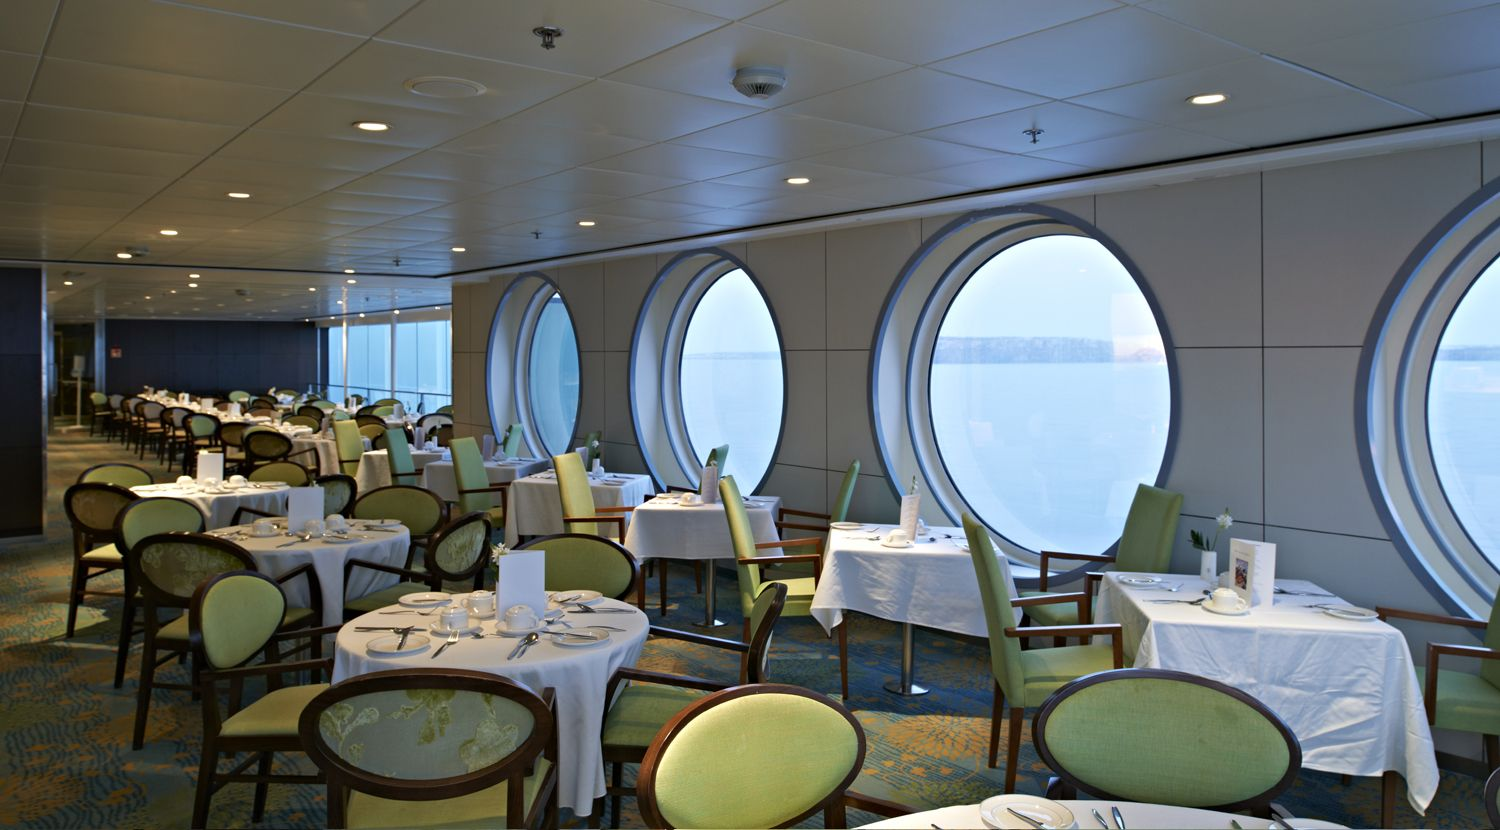 The Avon Restaurant On Board Balmoral Has Been Tastefully Designed